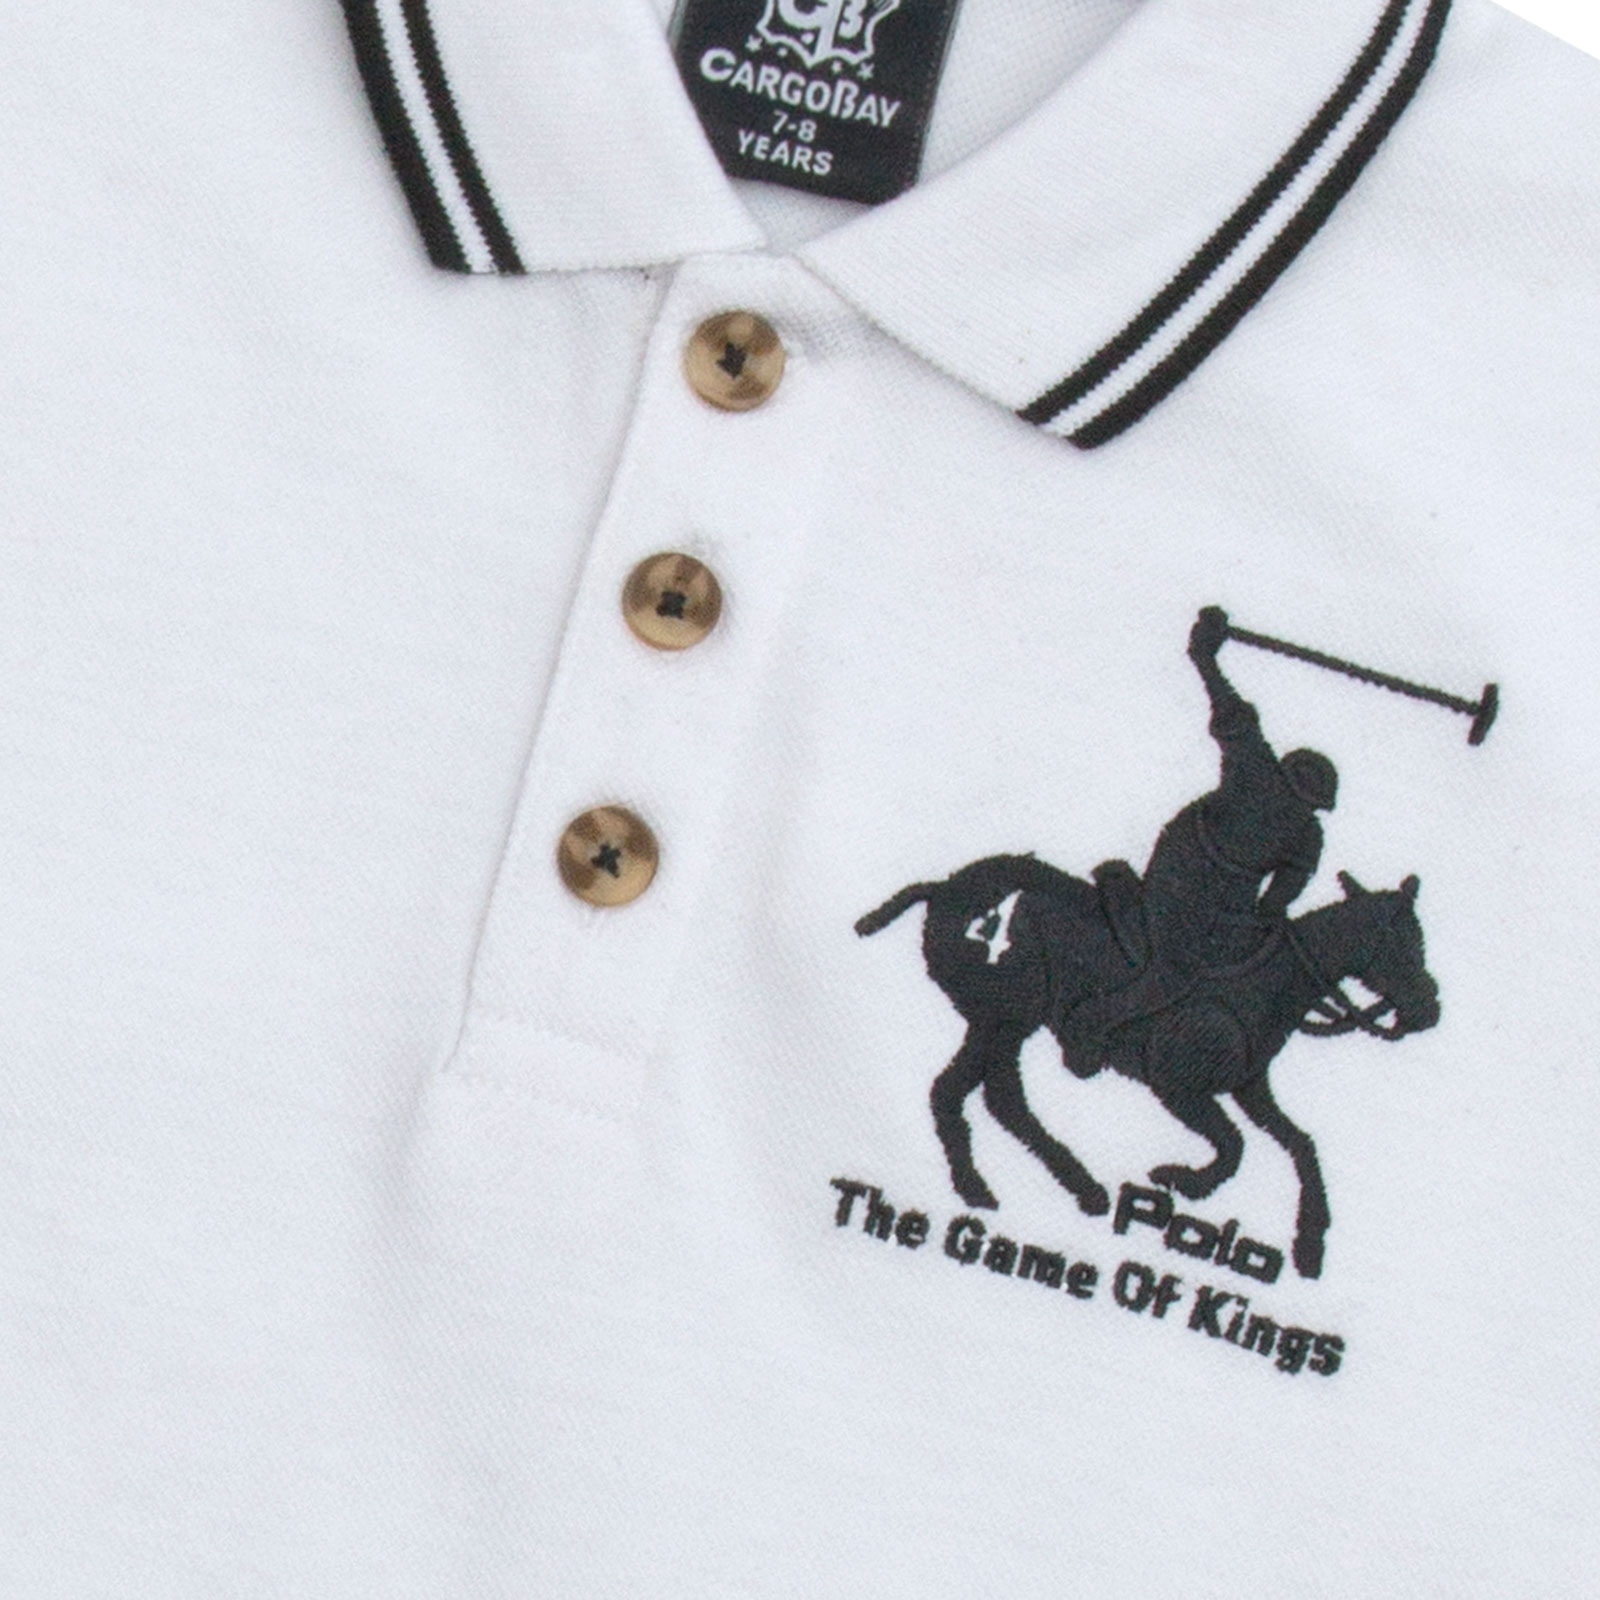 Boys-T-Shirt-Horse-Embroidery-Polo-Cotton-Top-Age-2-3-4-5-6-7-8-9-10-11-12-13-Yr thumbnail 27